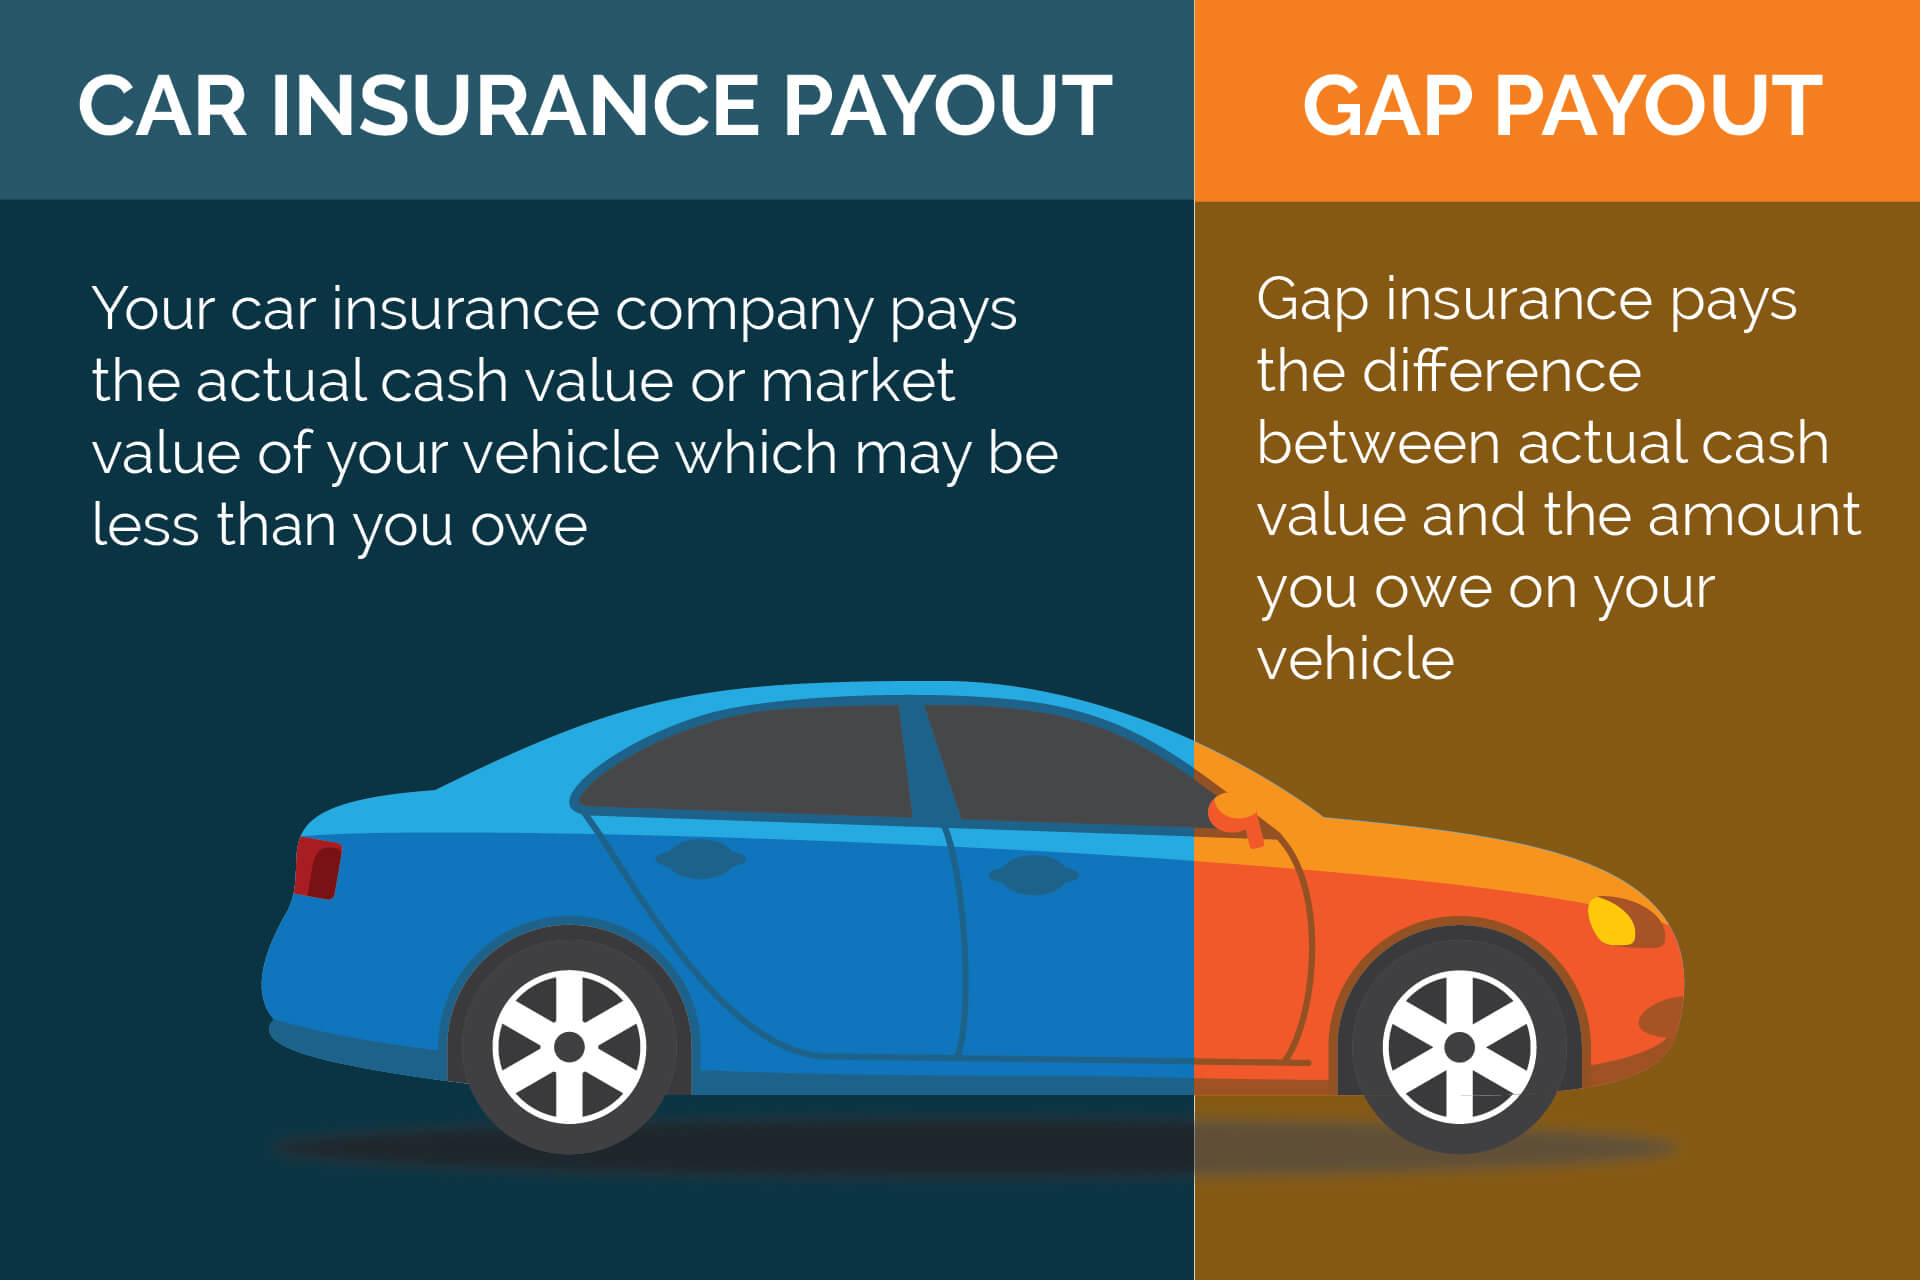 Where to get gap insurance